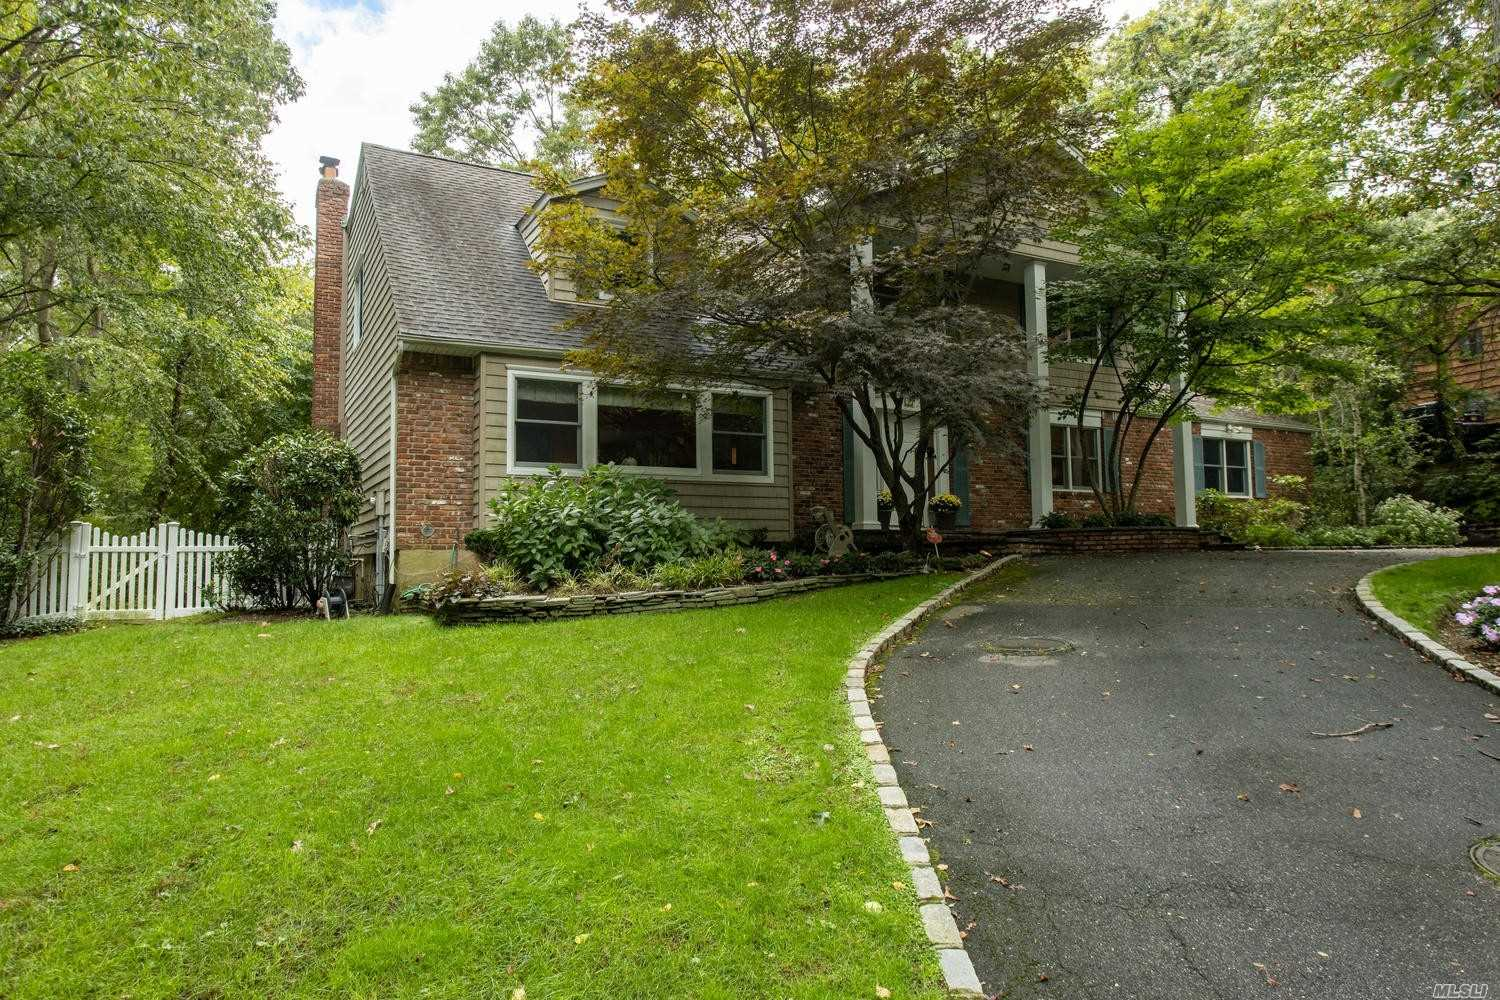 Beautiful Center Hall Colonial. Walk In To A Large Bright Entry/Foyer, Formal Living Room, Formal Dining Room, Eat-In-Kitchen, Great Room/Den With Gas Fire Place And Private Laundry Room/Pantry. Features A Master With Full Bath, 3 Additional Bedrooms And Full Bath. Full Finished Basement With Wet Bar, Lounge Space And Gym Area. In ground gunite salt water pool!